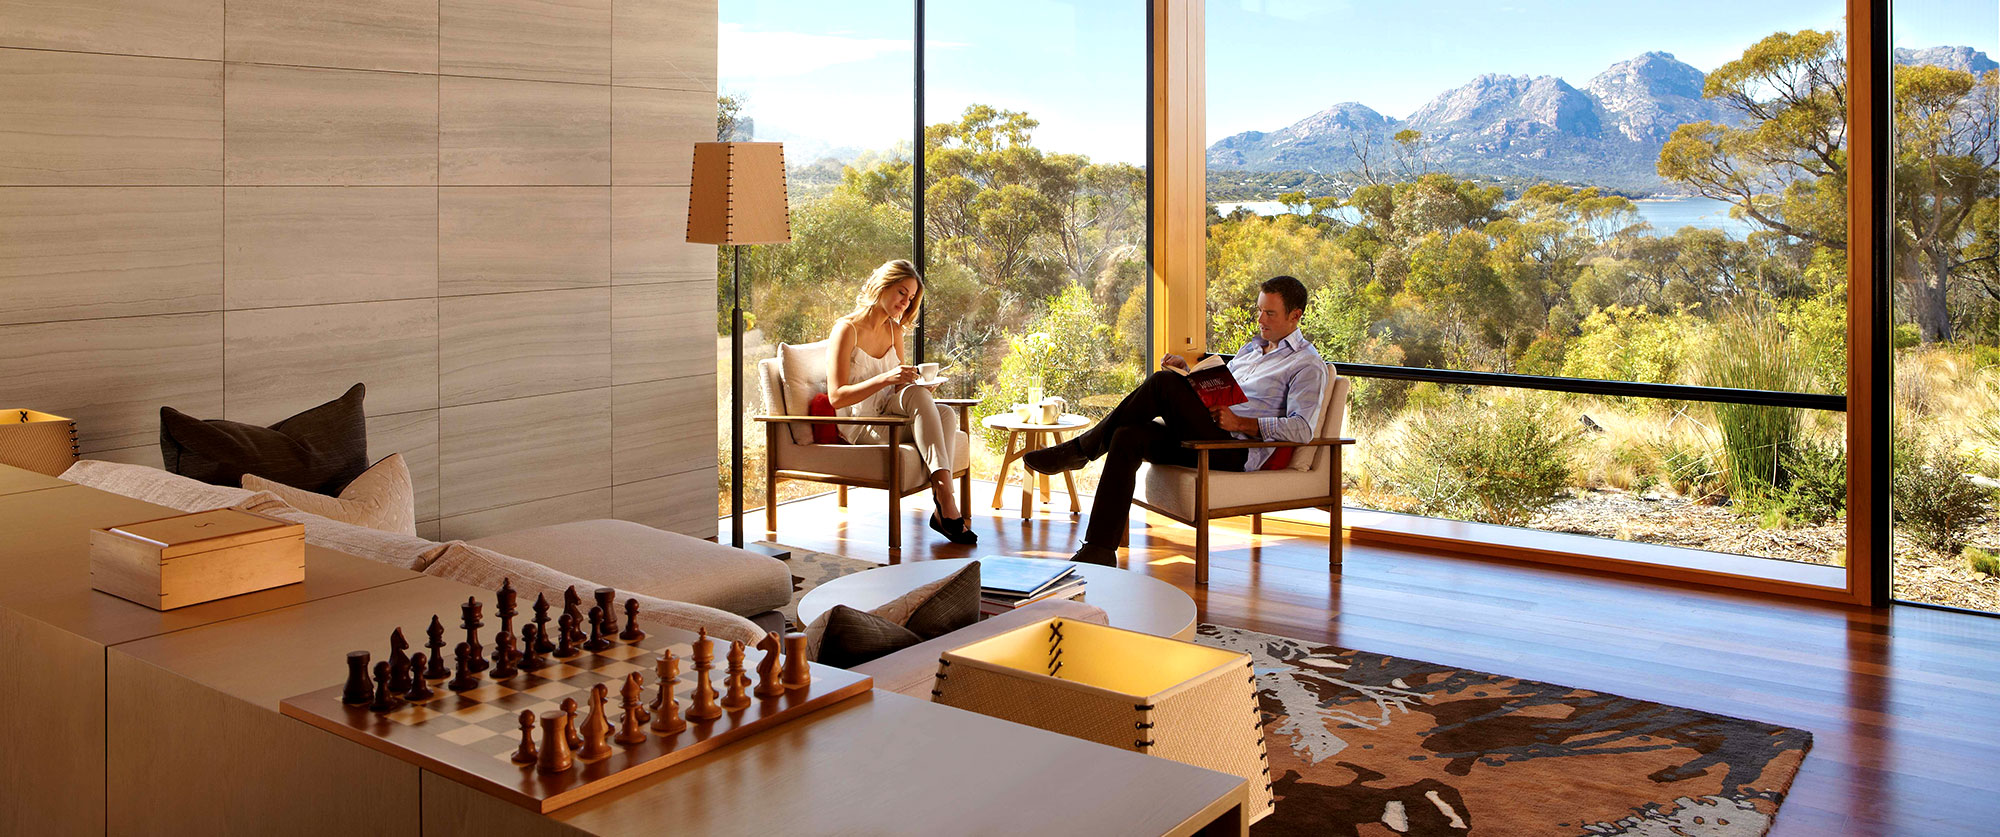 South Australia Fiji Luxury Travel Package: Exclusive Resorts, Wildlife and Cuisine - Saffire Freycinet Tasmania